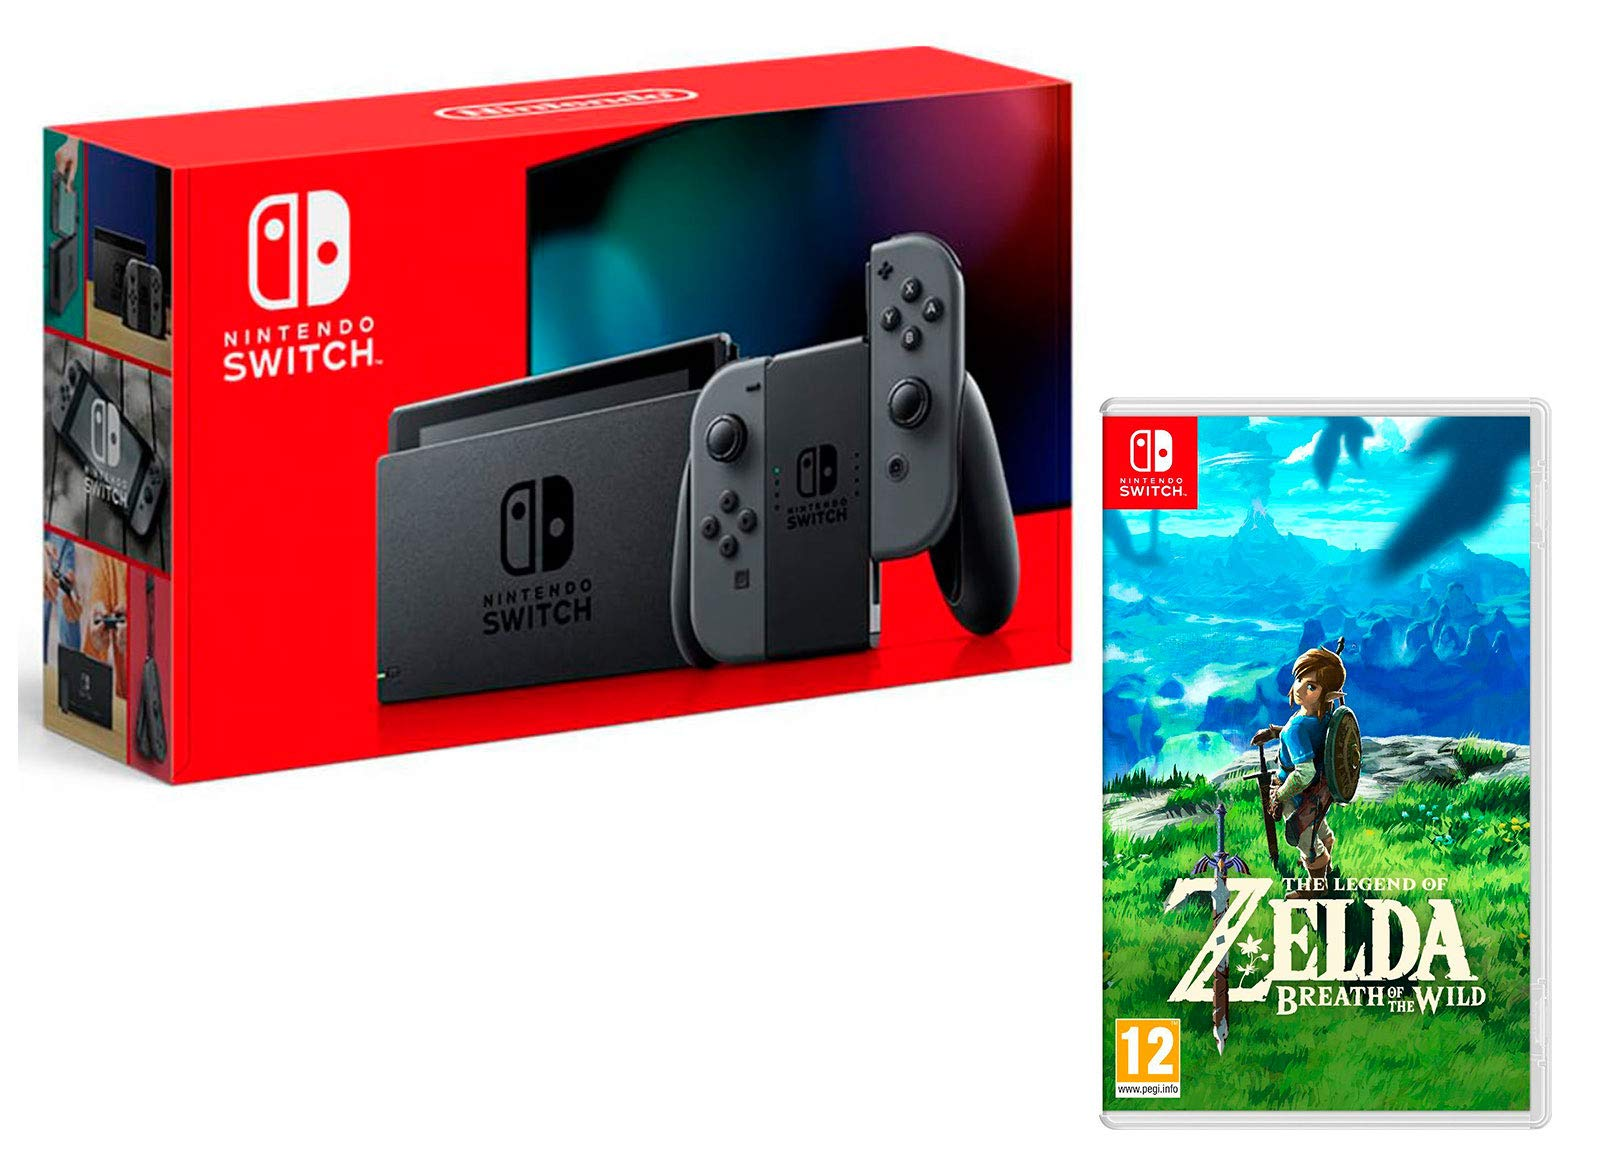 Nintendo Switch 32Gb Gris + The Legend of Zelda: Breath of The Wild: Amazon.es: Videojuegos